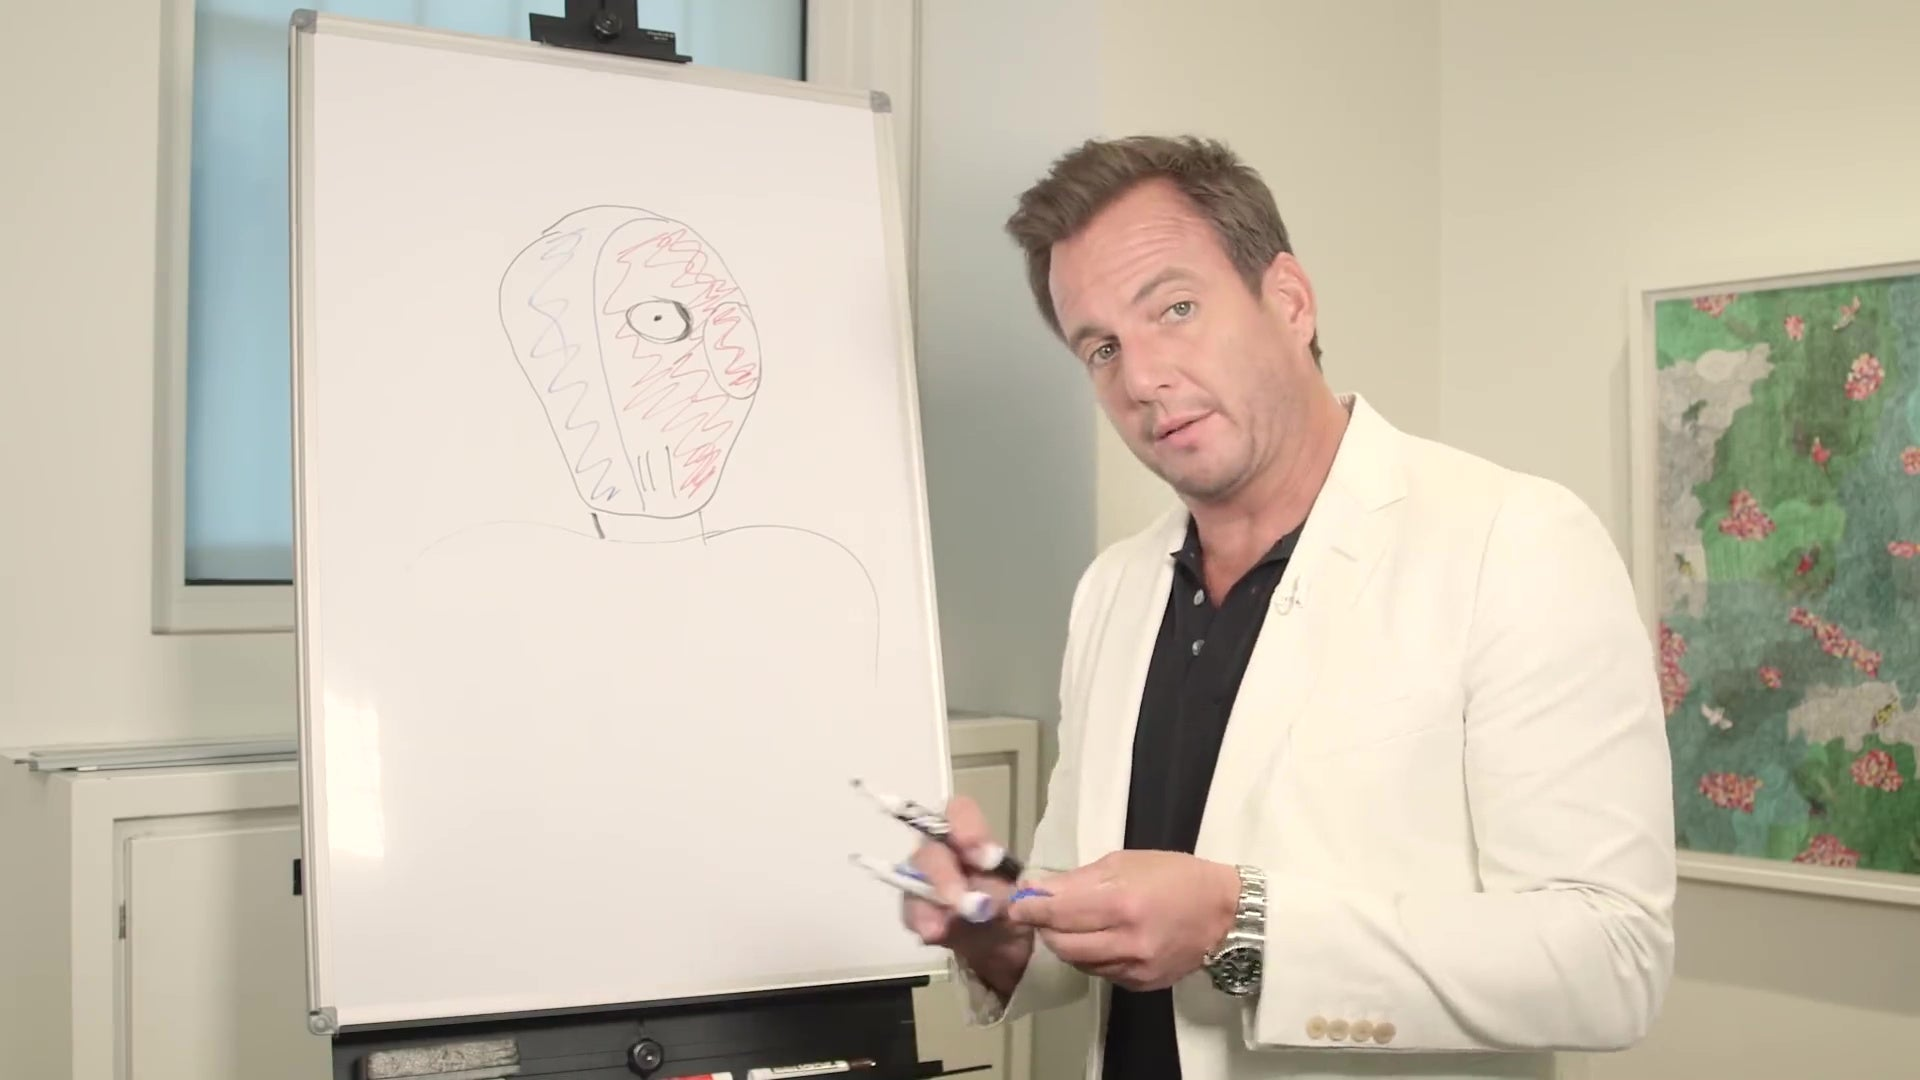 Will Arnett stands in front of a not-very-convincing drawing of Slade.